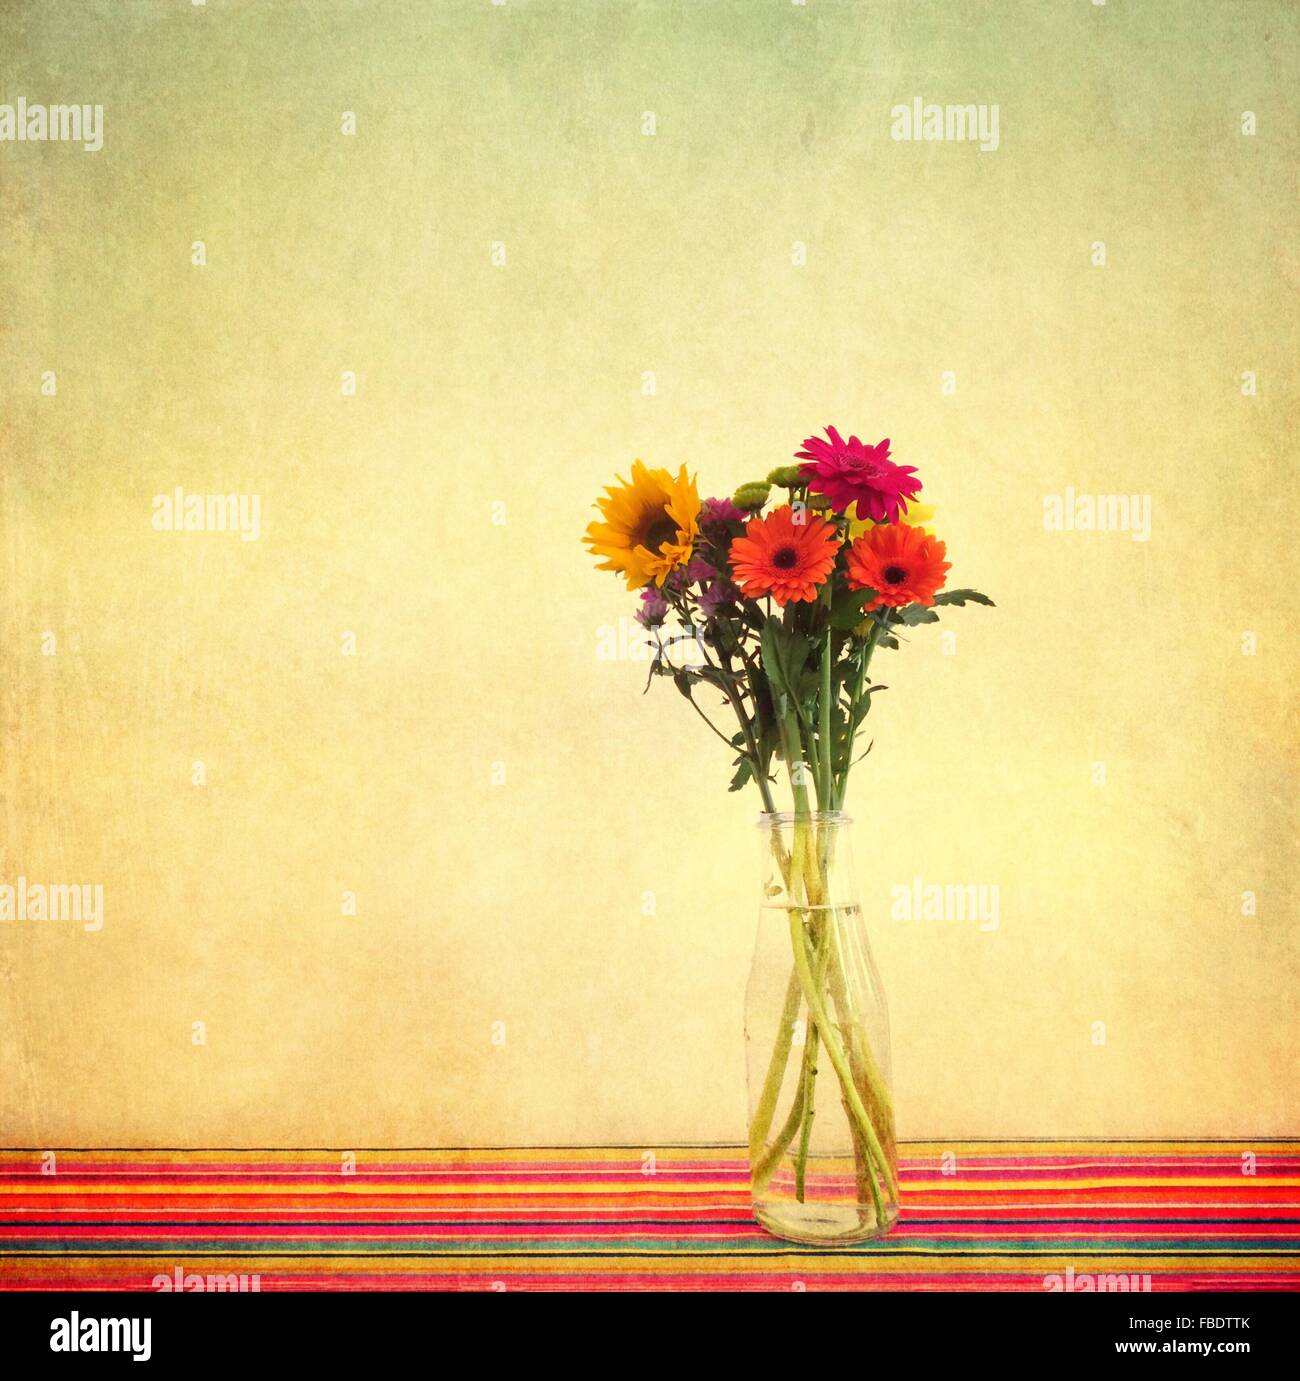 Gerberas In Vase On Table Against Wall - Stock Image